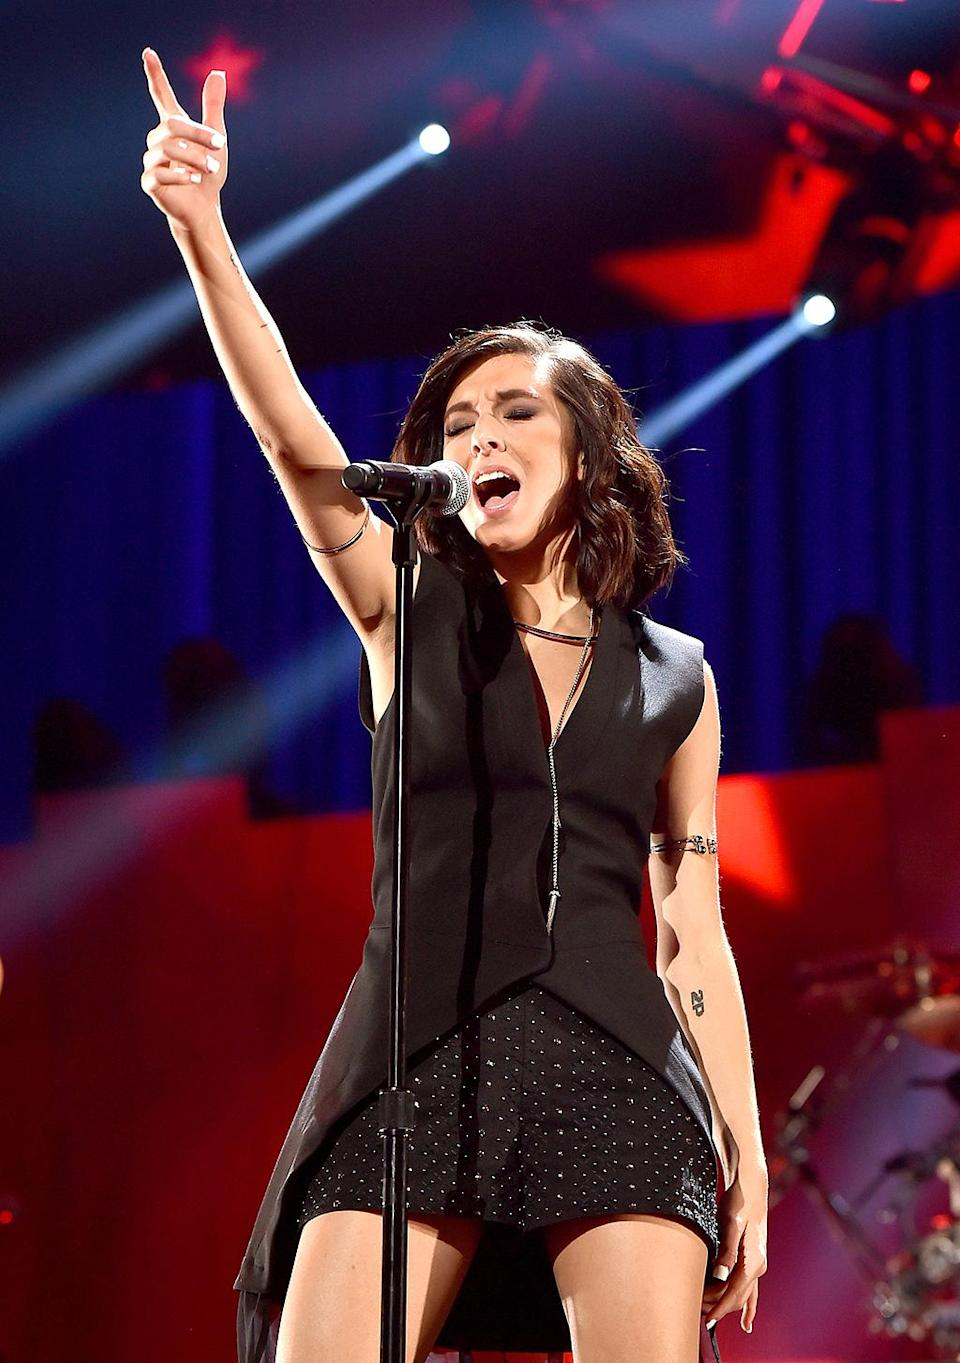 Christina Grimmie was a pop singer and YouTube star who made the top three of 'The Voice' Season 6. On June 10, she was gunned down by a stalker while signing autographs after a concert in Orlando. She was 23. (Photo: Getty Images)